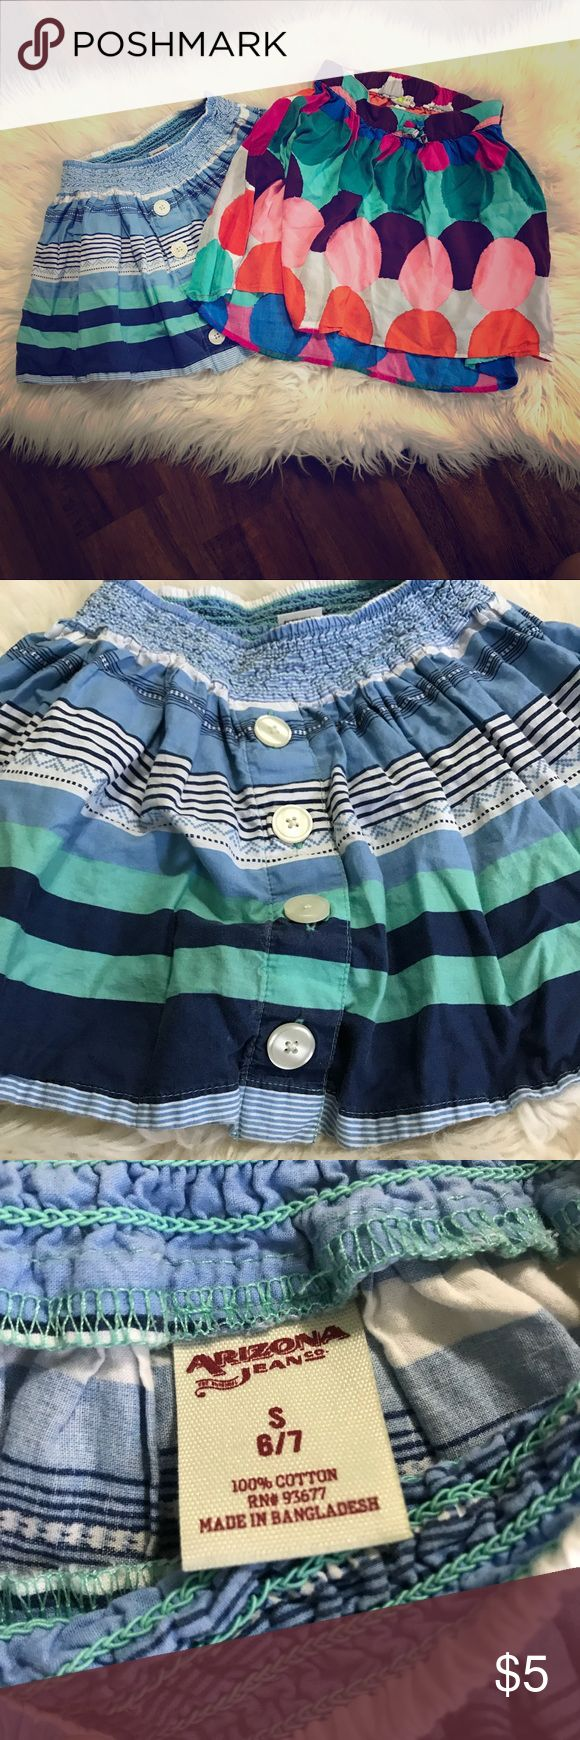 Girls Skirts ▪️striped skirt has four buttons for decorative purpose only down the front.  Arizona Jean company size 6/7 with elastic waistbands ▪️second is multi-colored skirt from crazy 8 also with elastic waistbands size 7/8 ▪️both are in excellent condition Bottoms Skirts